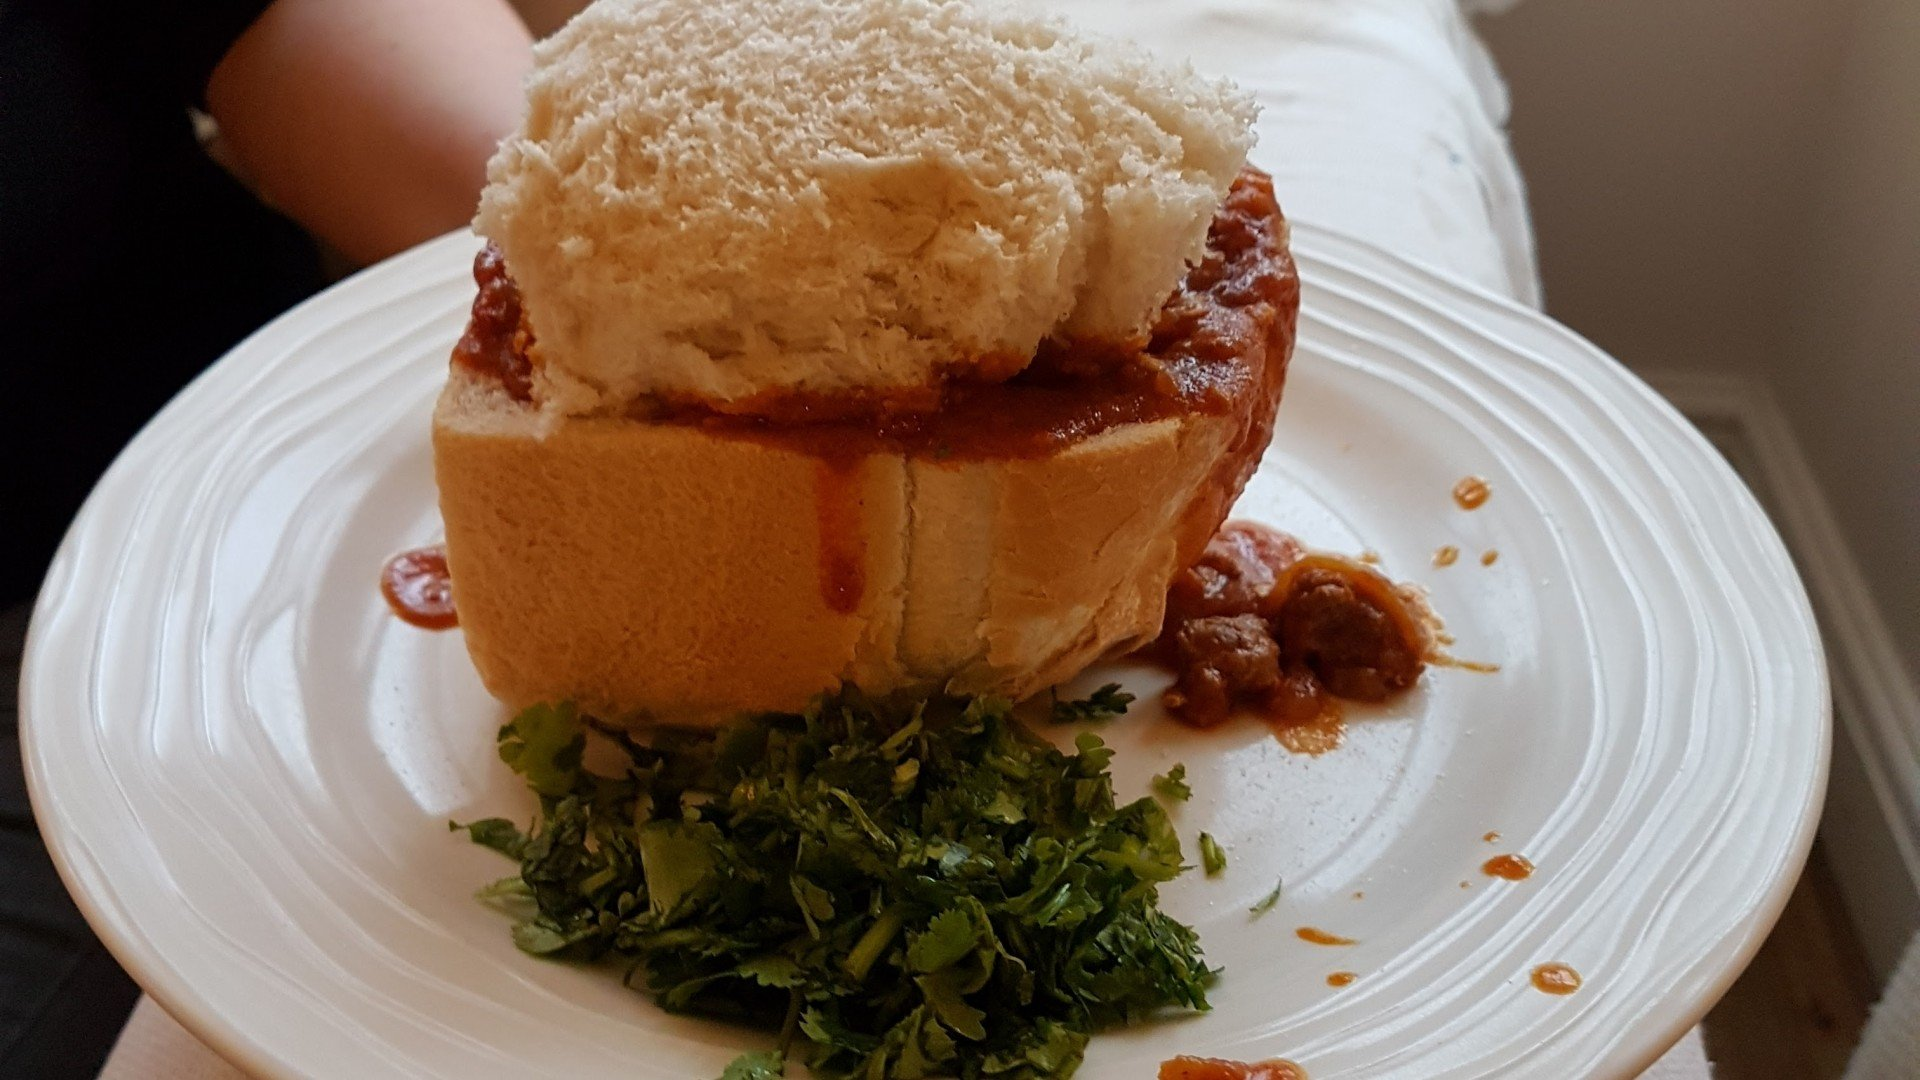 Bunny Chow - Home made in the UK.